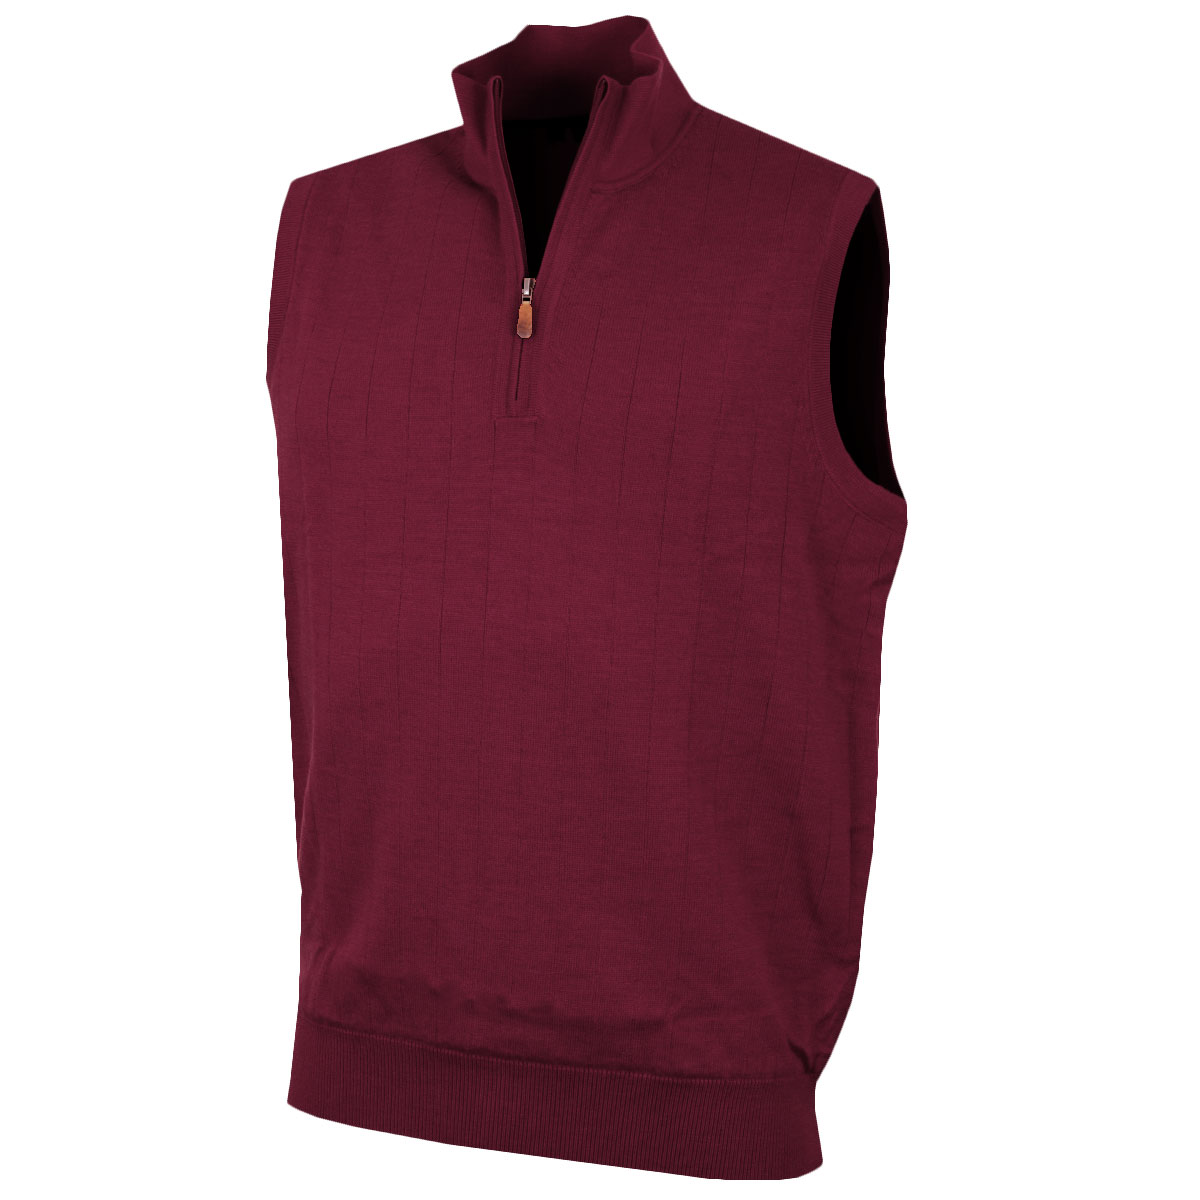 Bobby Jones 2016 Mens Merino 1/4 Zip Lined Vest Sweater Pullover ...